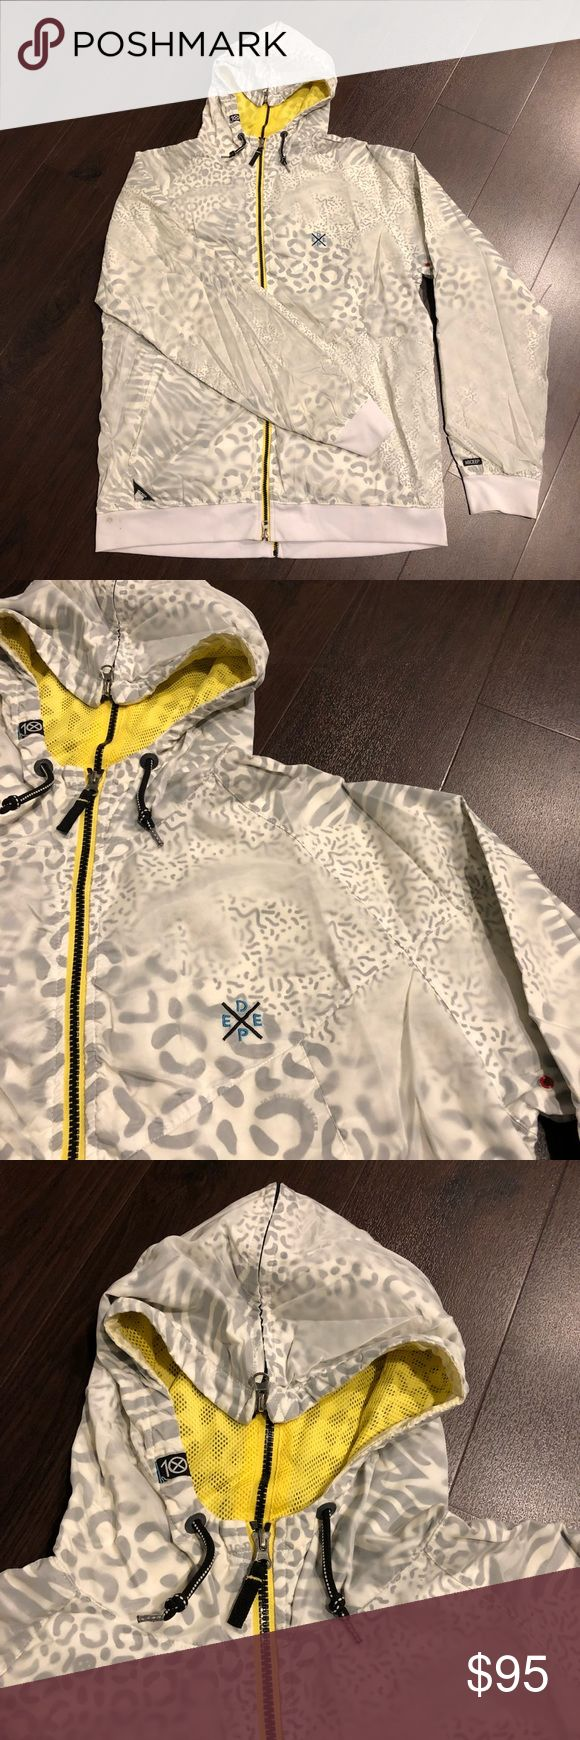 Men's 10 Deep Animal Print Zip Up Jacket, 10 Deep Men's XXL Jacket from 10 Deep. Zips down the front and down the back. Small stain on bottom right as shown in picture. Will probably come out in the wash just haven't tried. Animal print with yellow detailing. 10 Deep Jackets & Coats